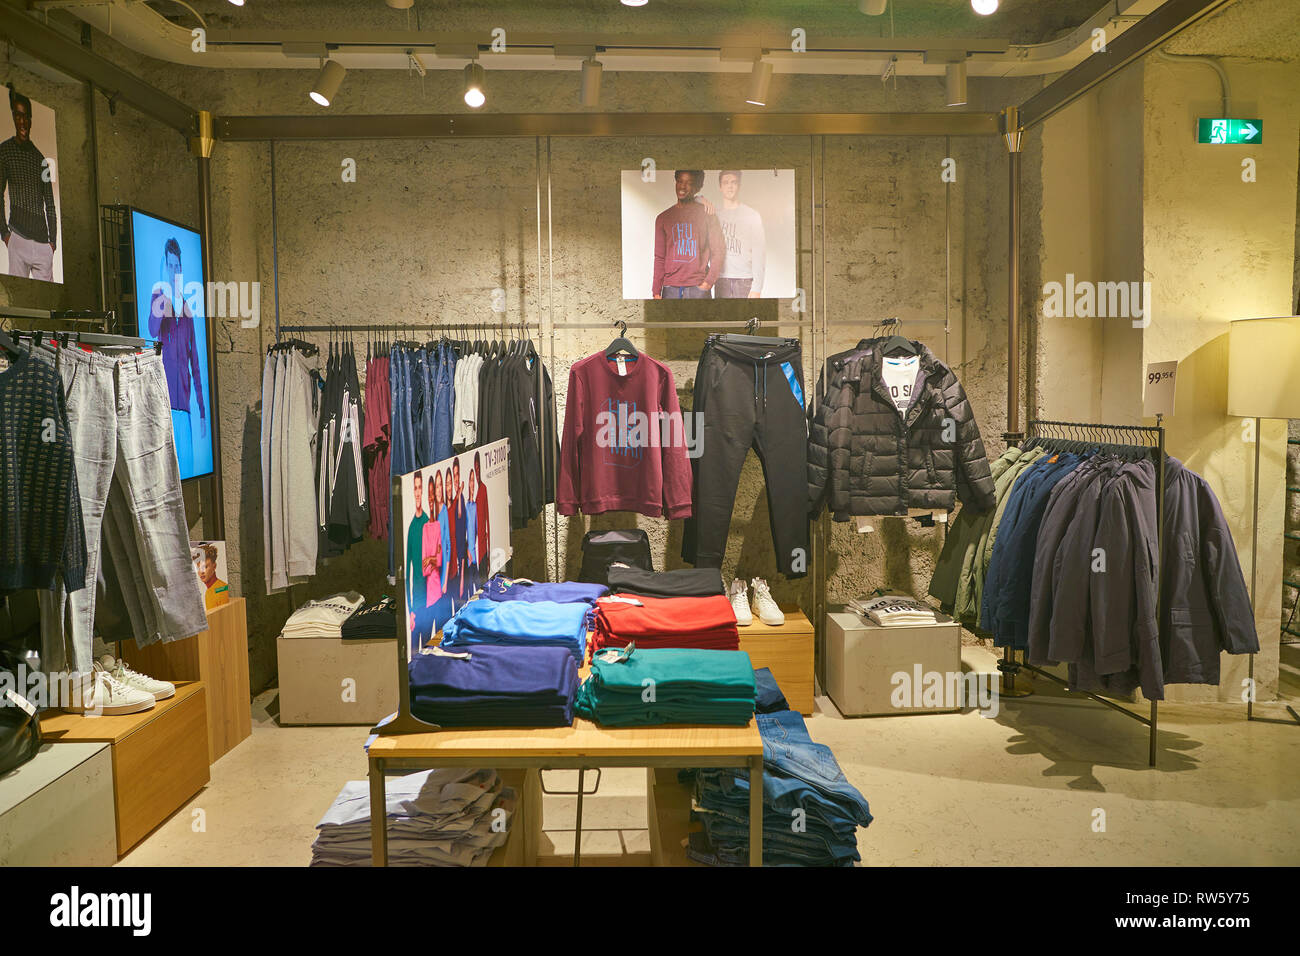 ROME, ITALY - CIRCA NOVEMBER, 2017: interior shot of United Colors of Benetton store in Rome. - Stock Image